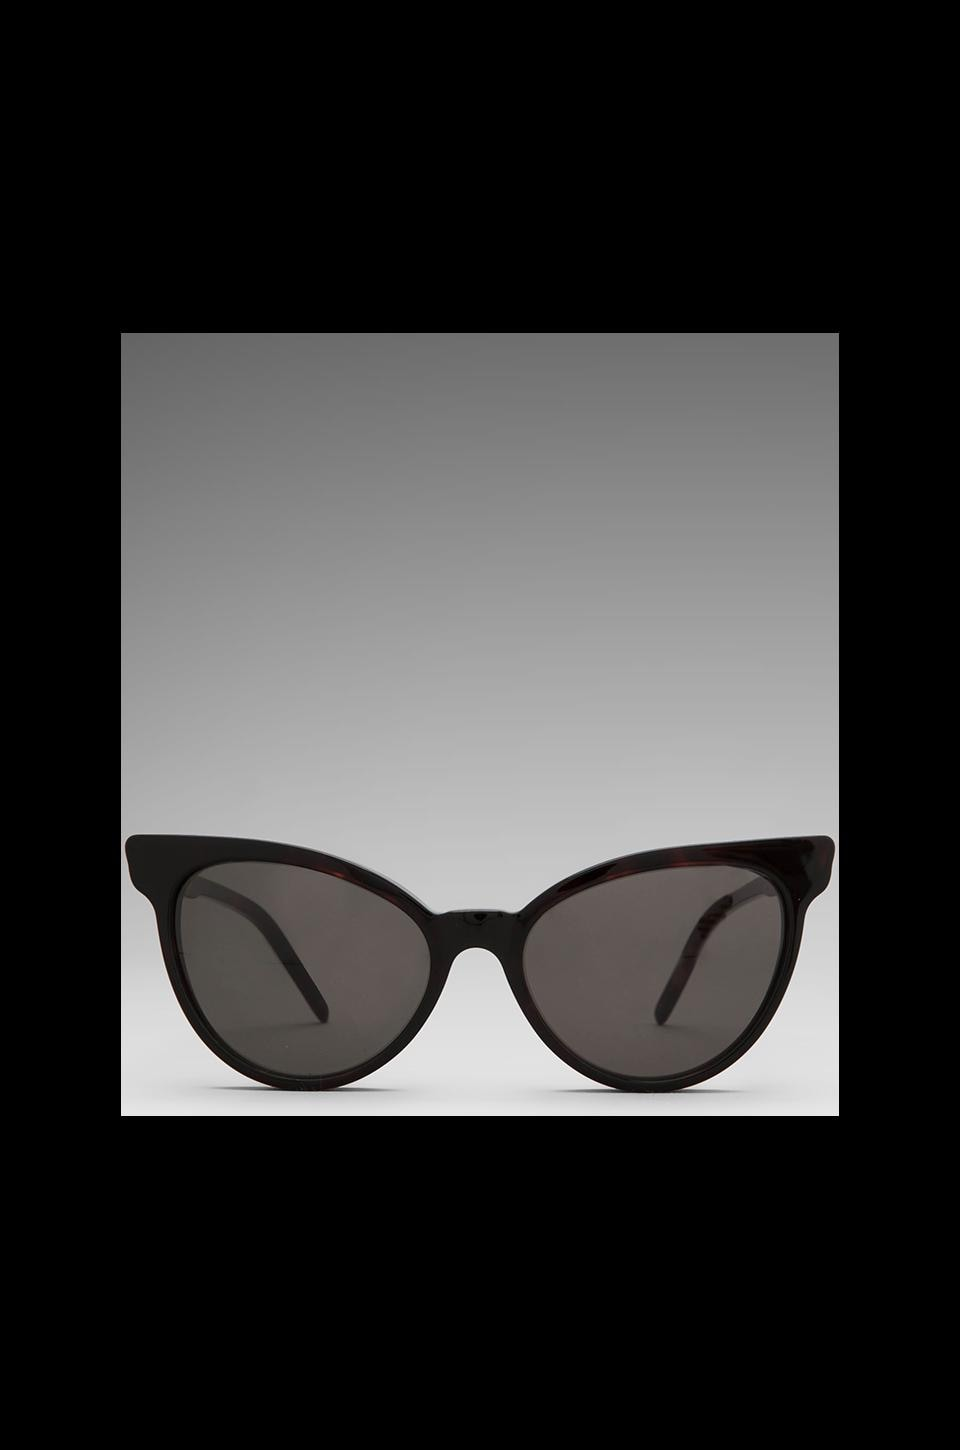 Wildfox Couture La Femme Sunglasses in Black